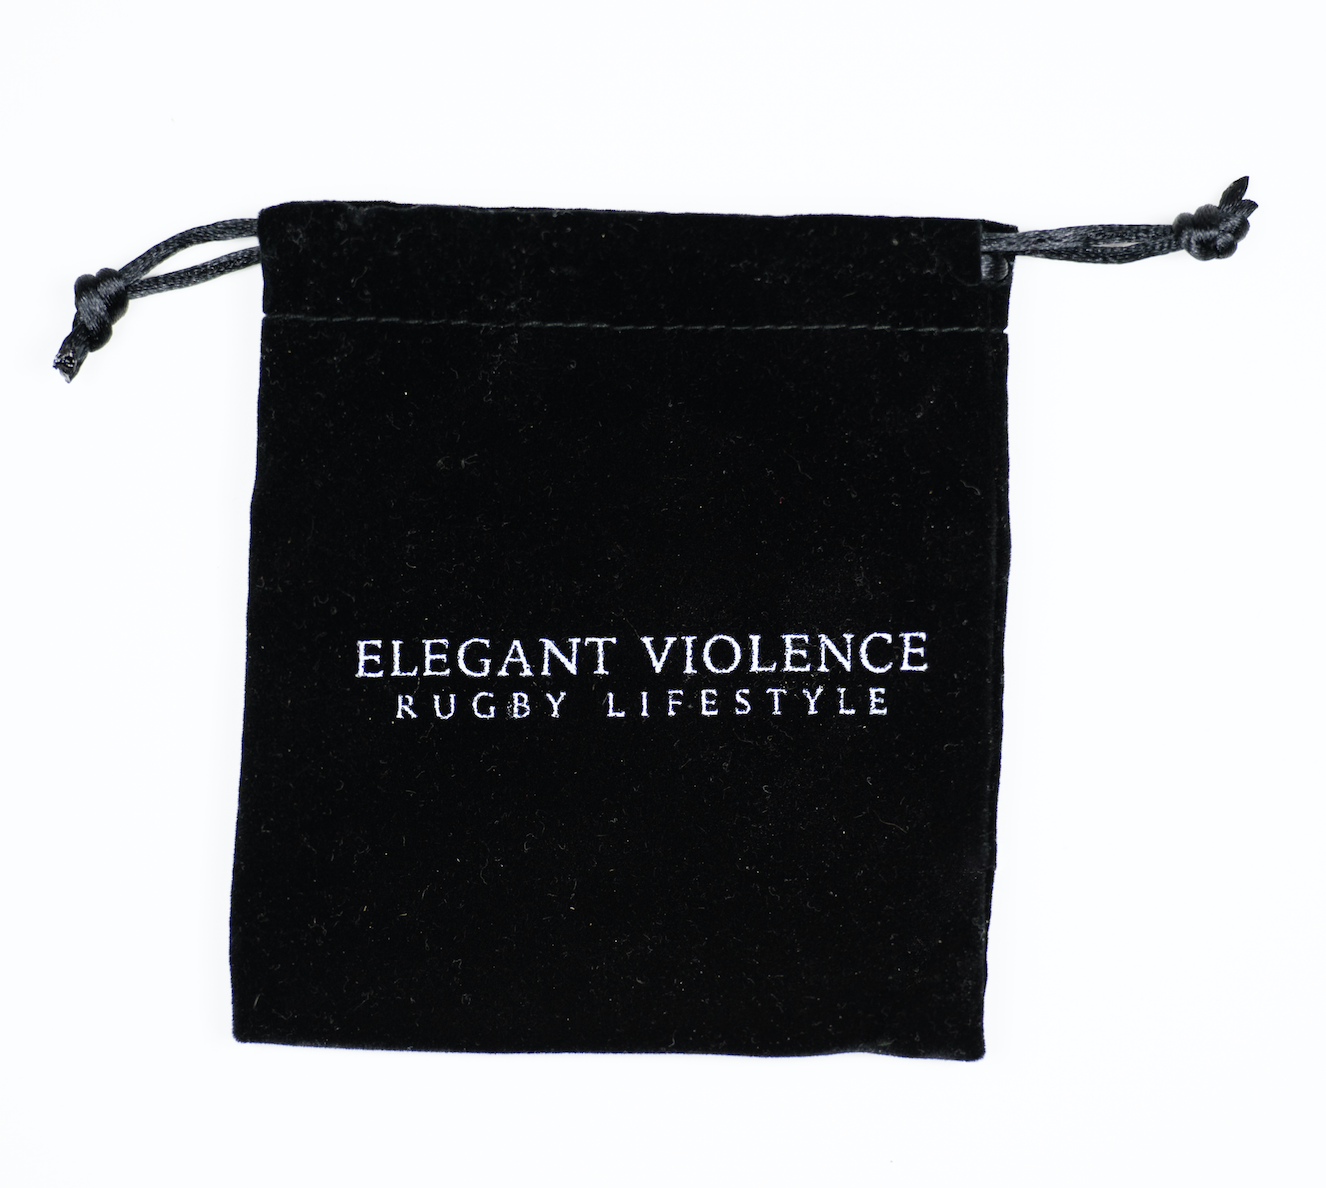 White Howlite w/ Black Rugby Ball - Elegant Violence Rugby Lifestyle